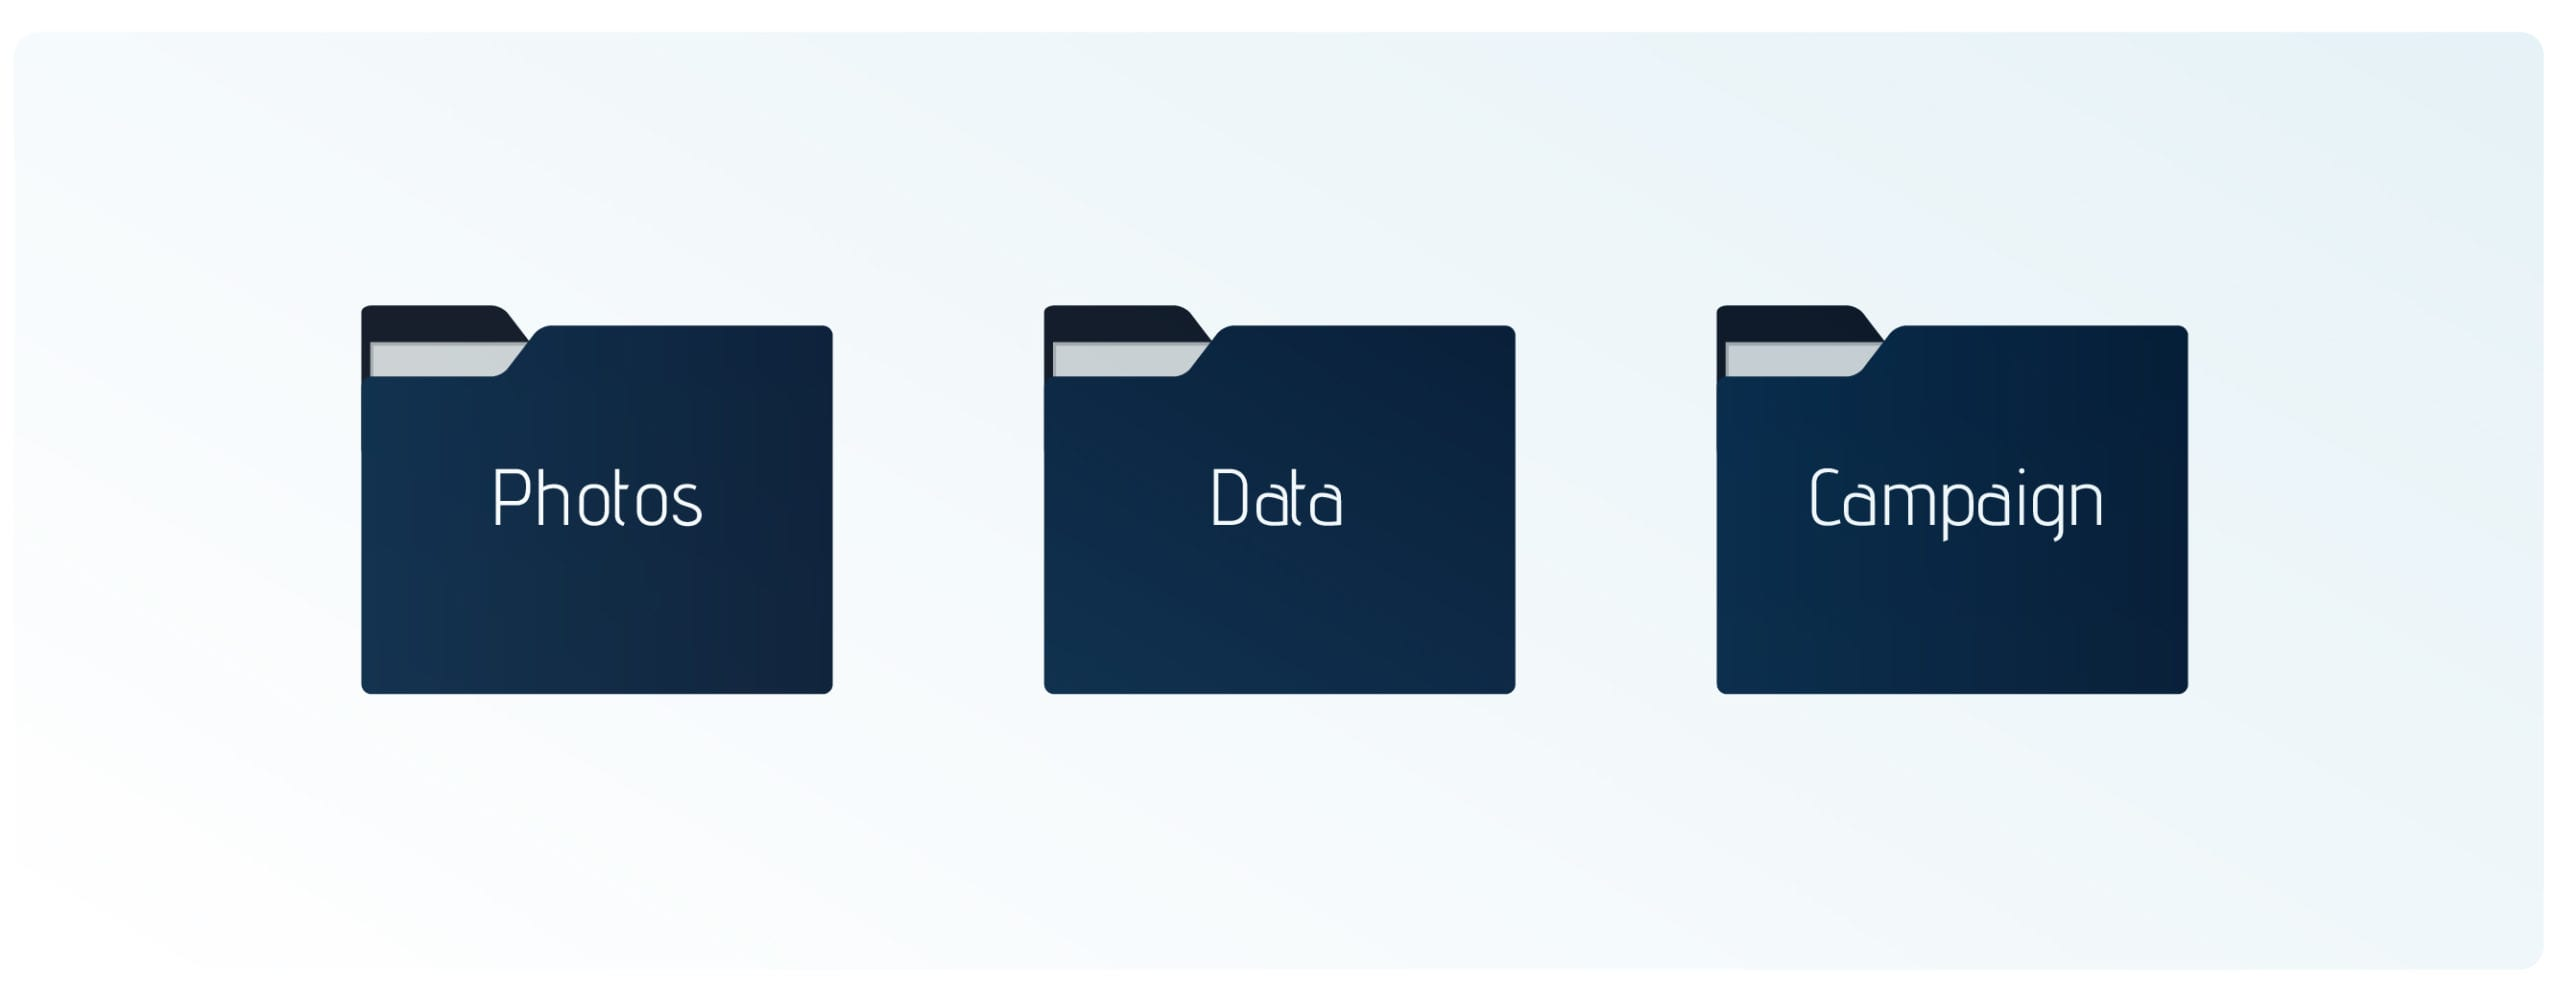 Data organization in libraries with brand files and folders.